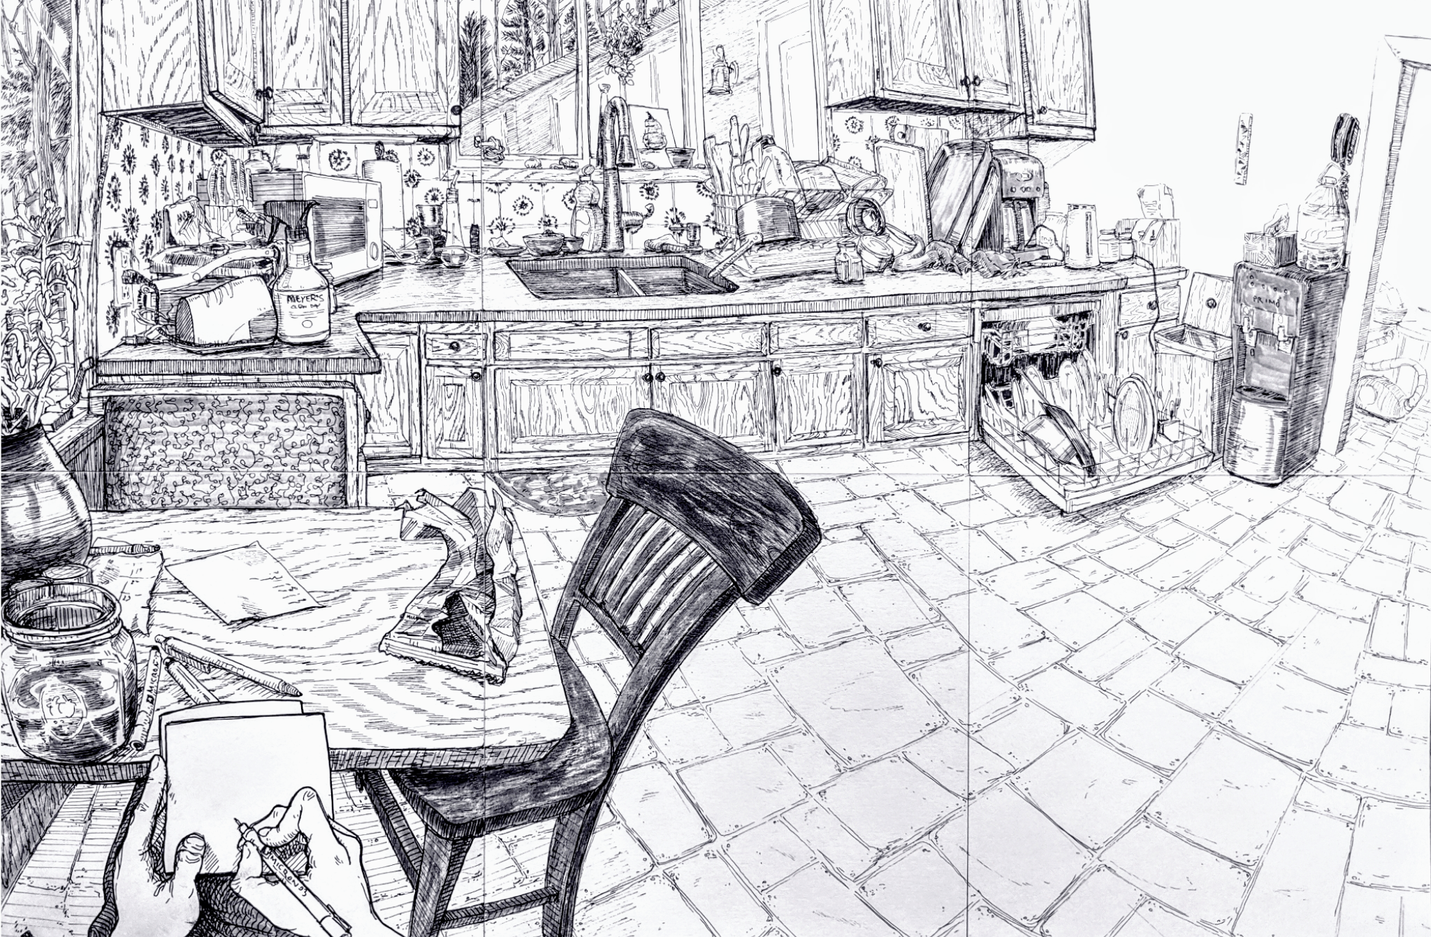 Kitchen Interior Drawing.png